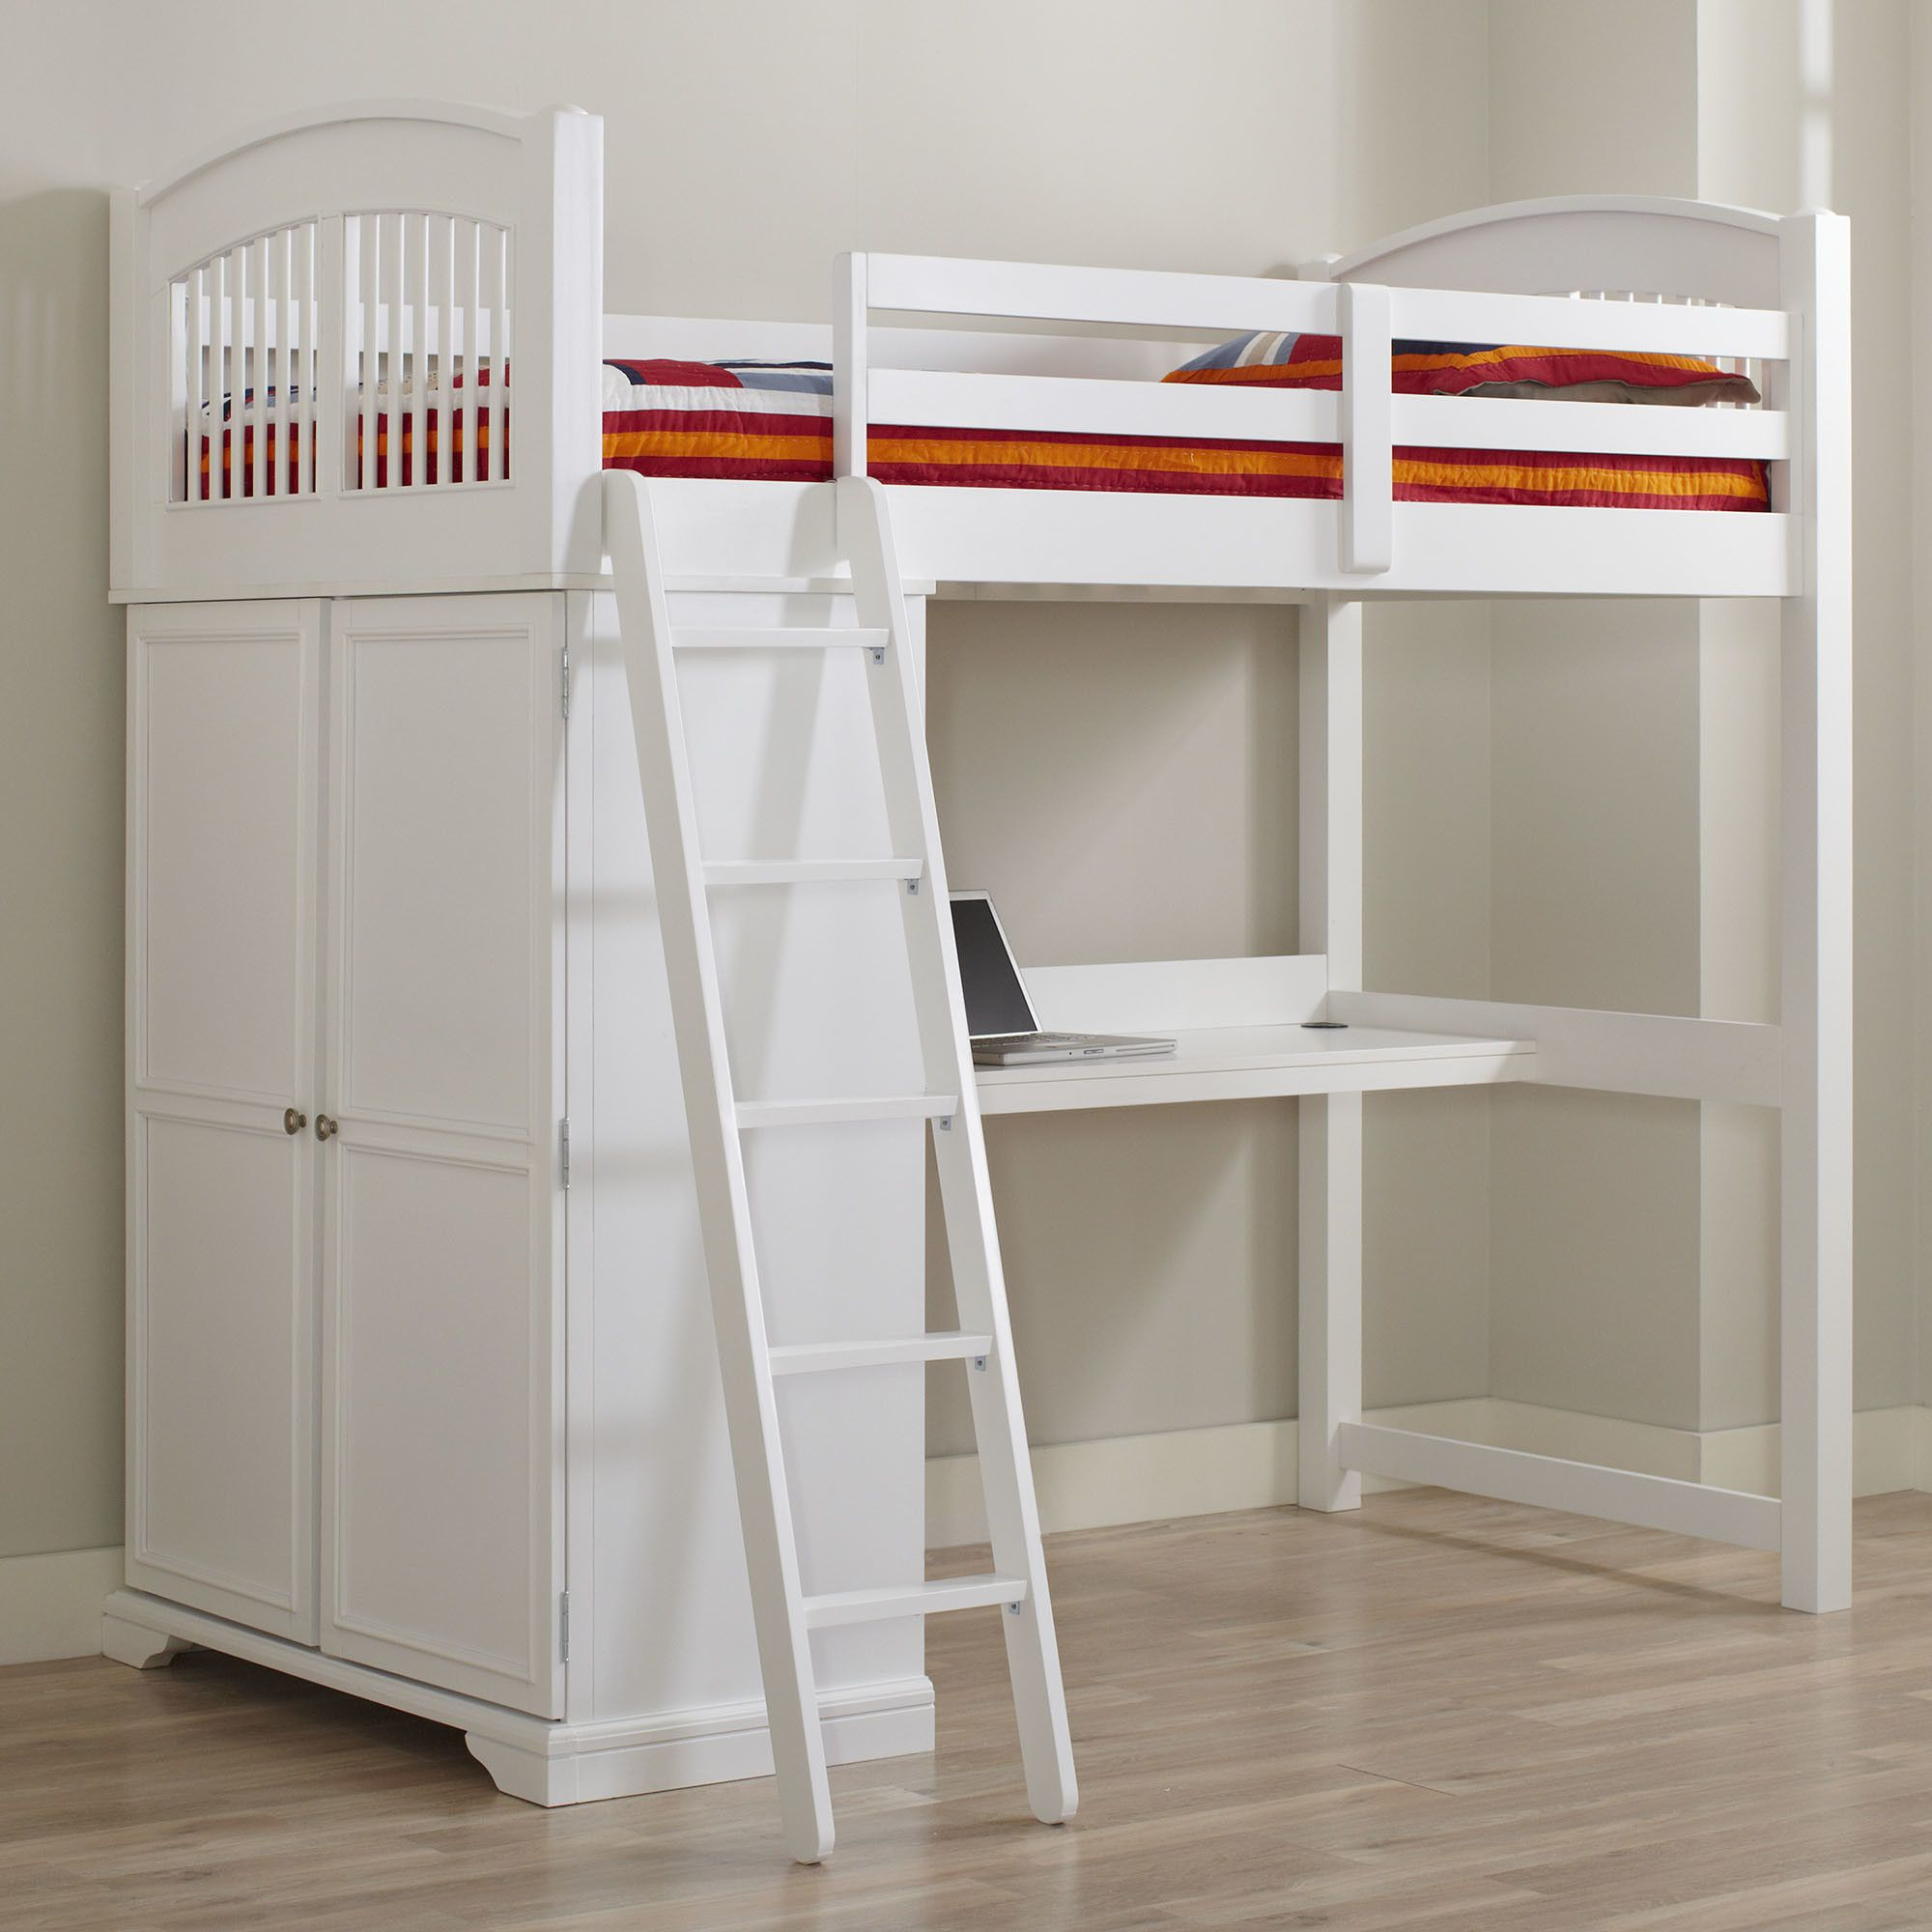 Shop Birch Lane For Kids Beds Headboards Traditional Furniture